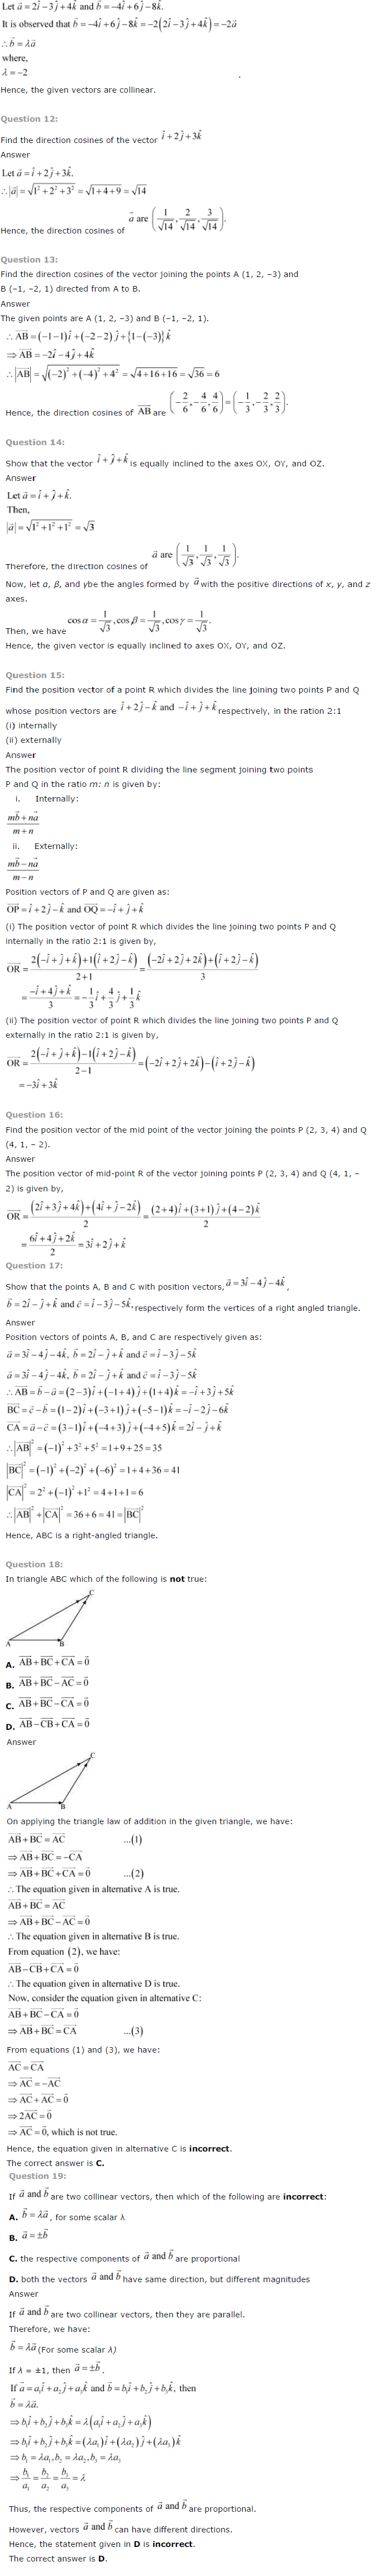 ncert solutions for class 12 maths chapter 7 miscellaneous exercise